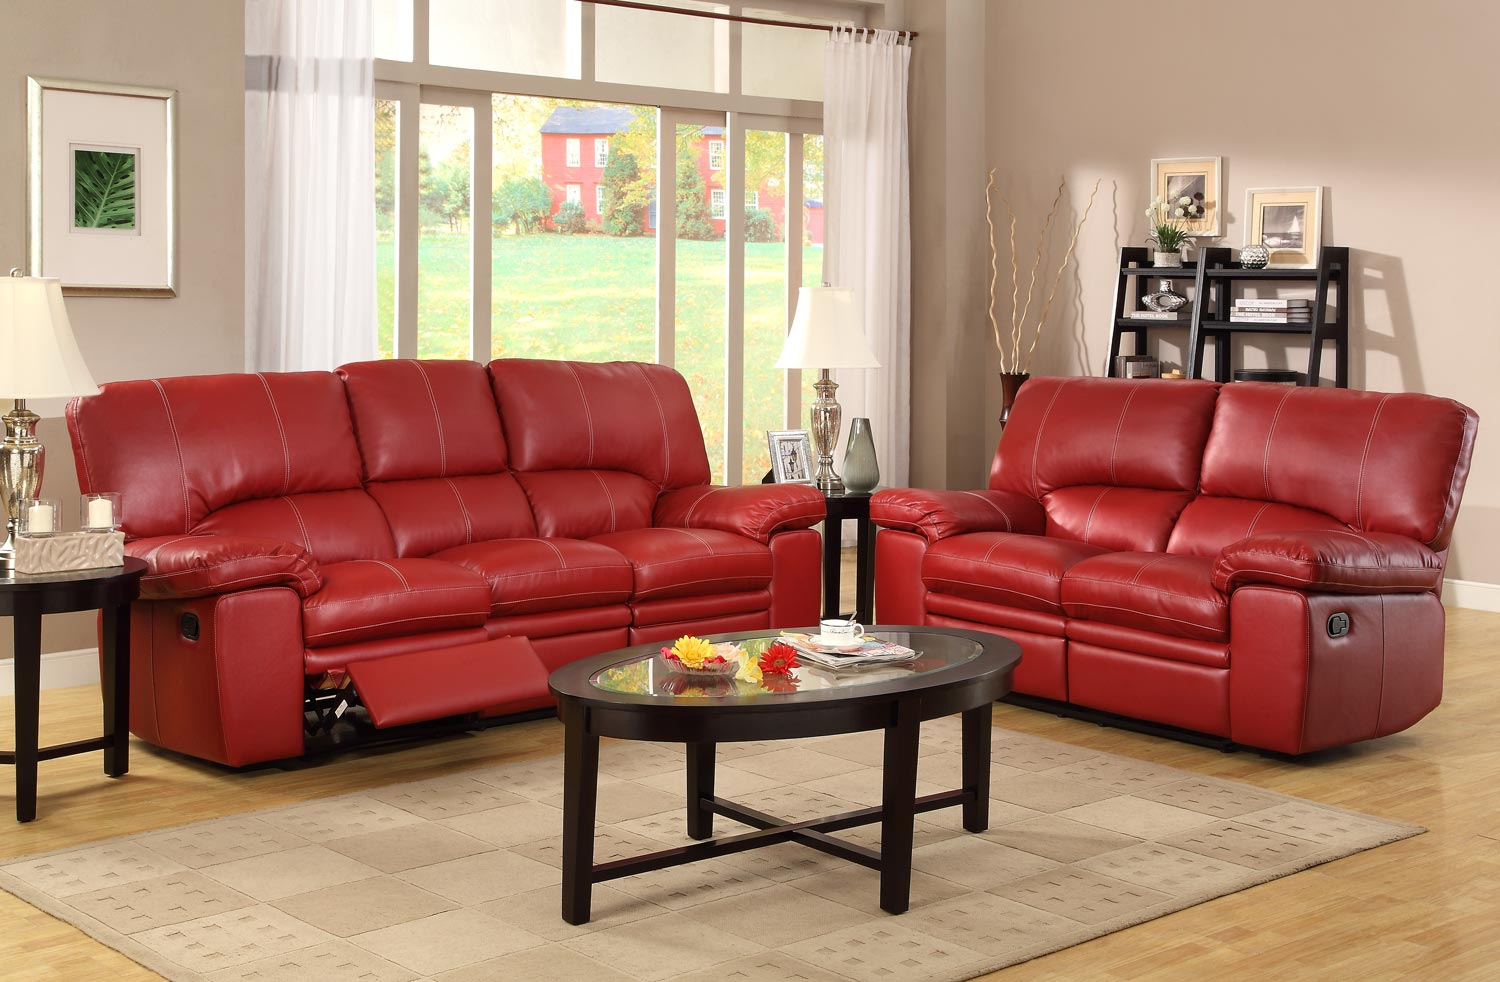 Homelegance kendrick reclining sofa set red bonded for Colorful living room sets